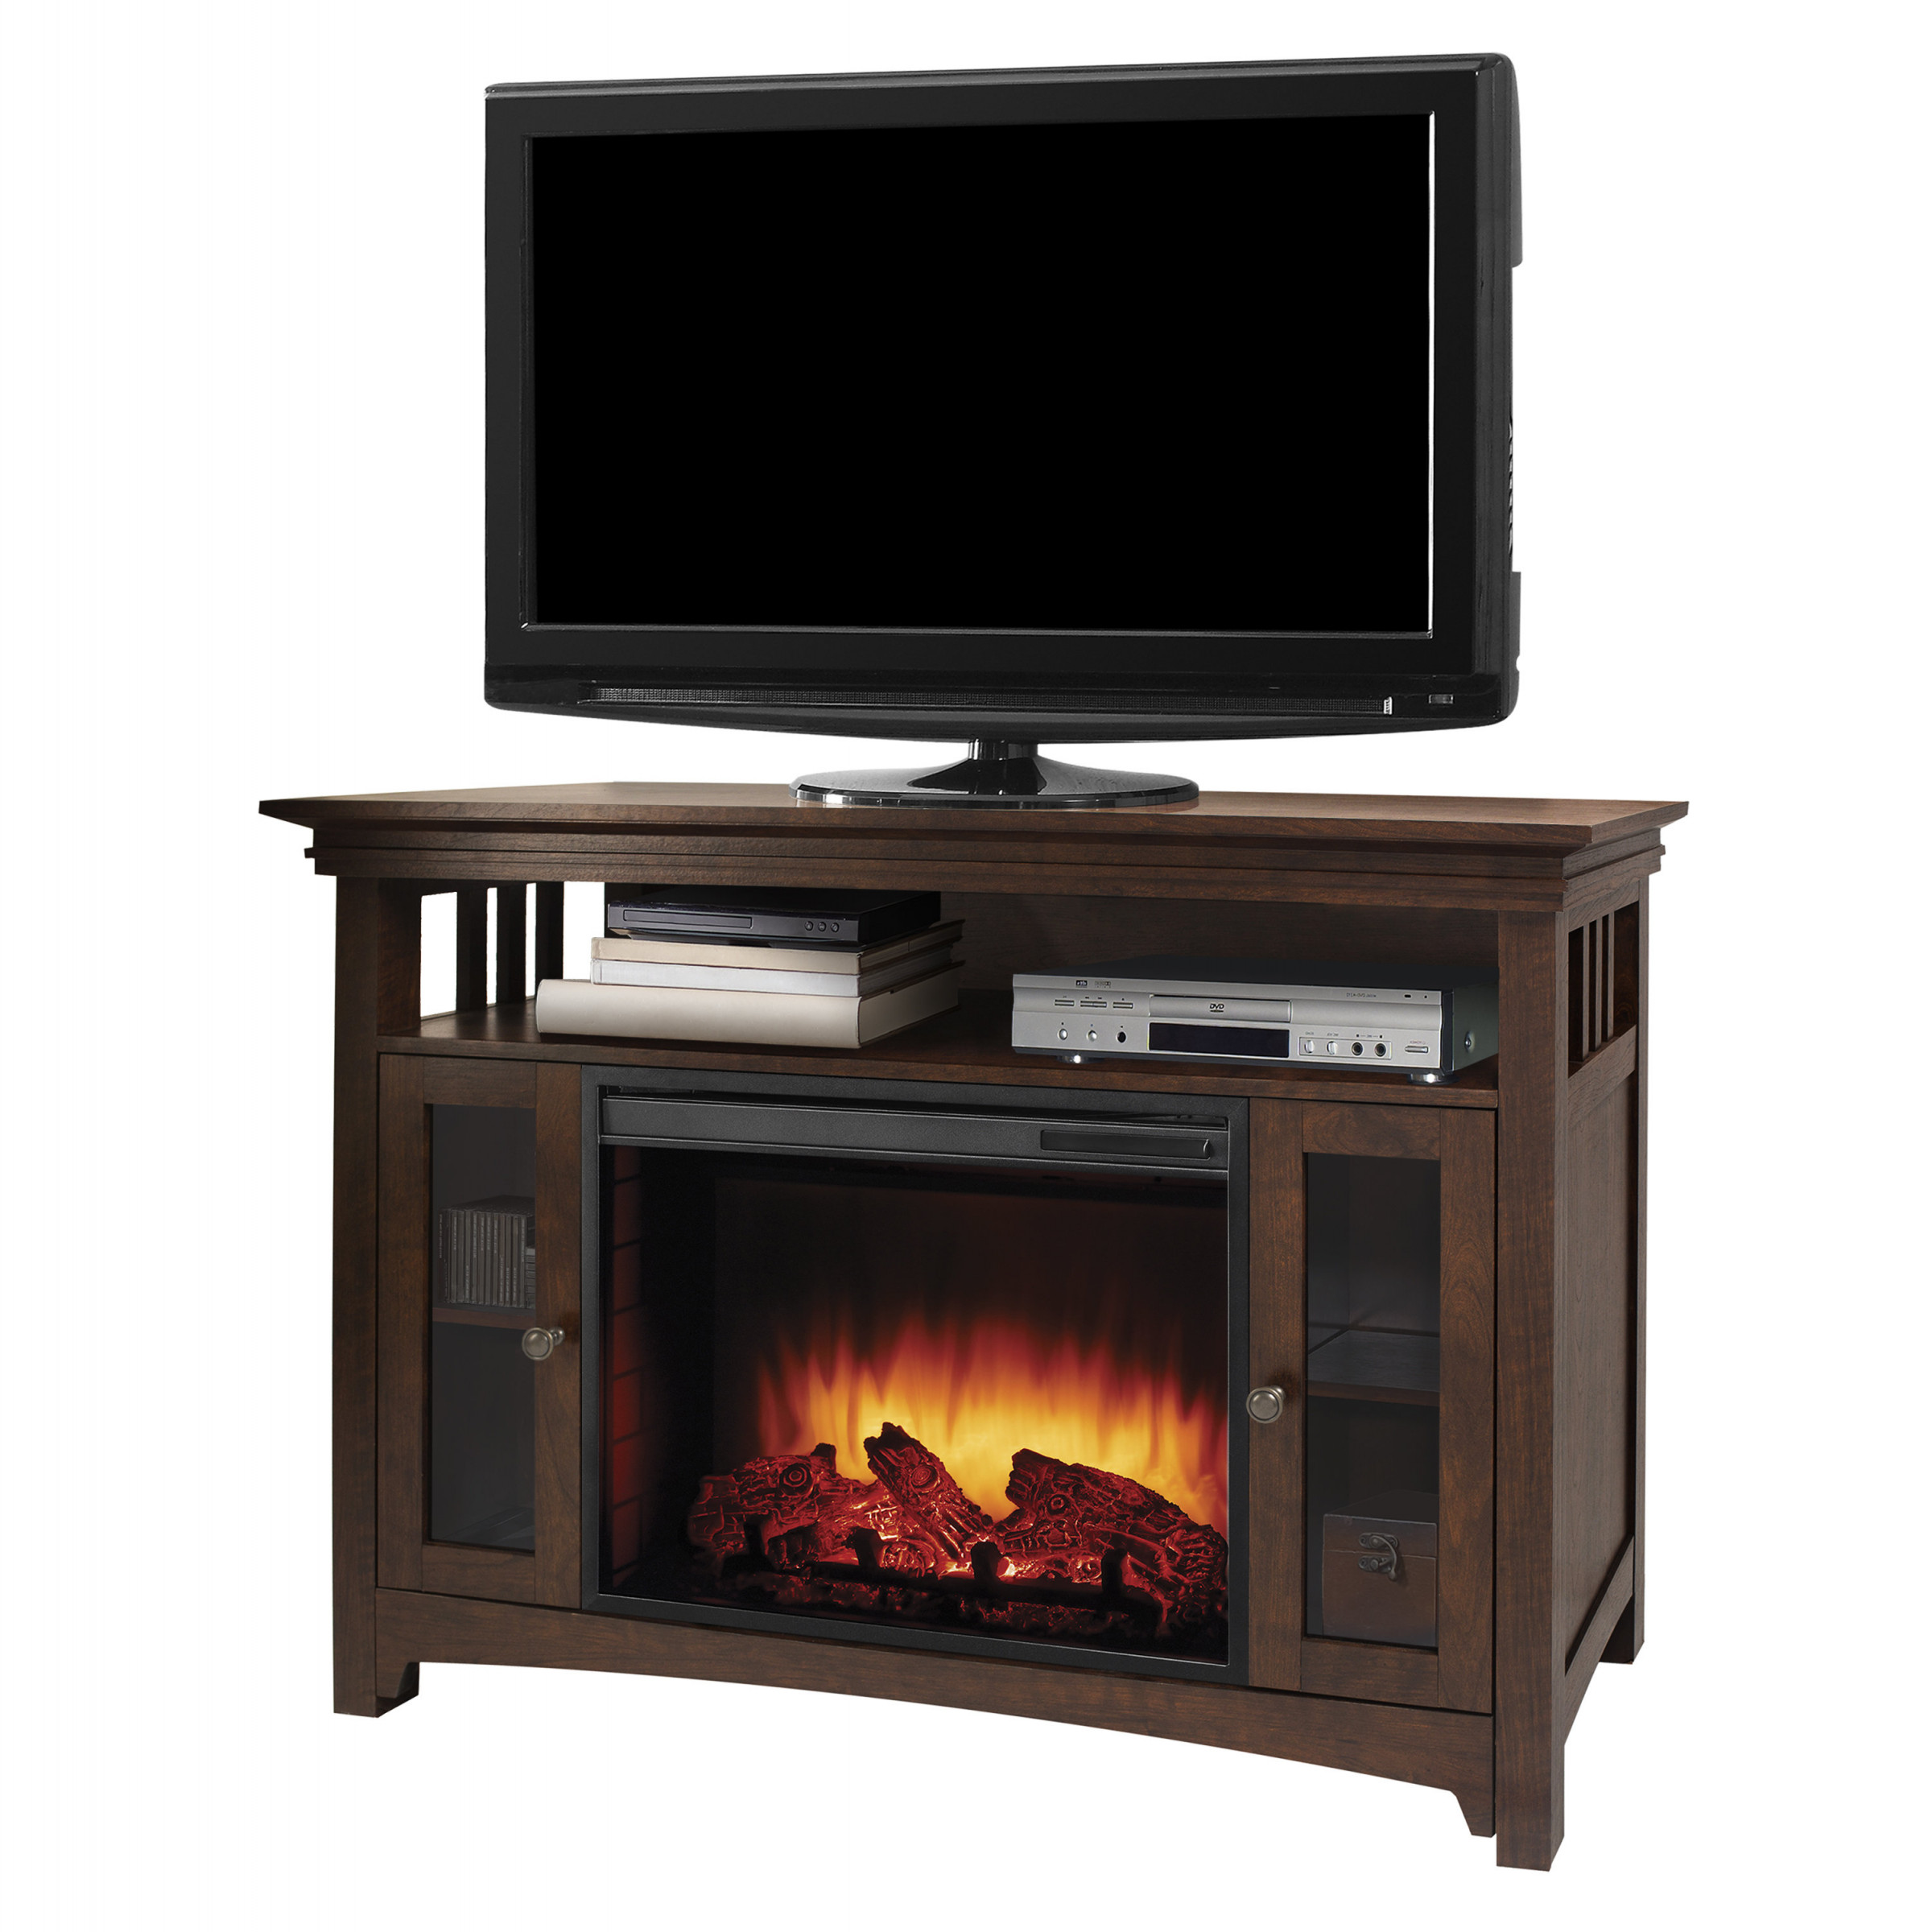 Fireplace Media Stand Luxury 35 Minimaliste Electric Fireplace Tv Stand